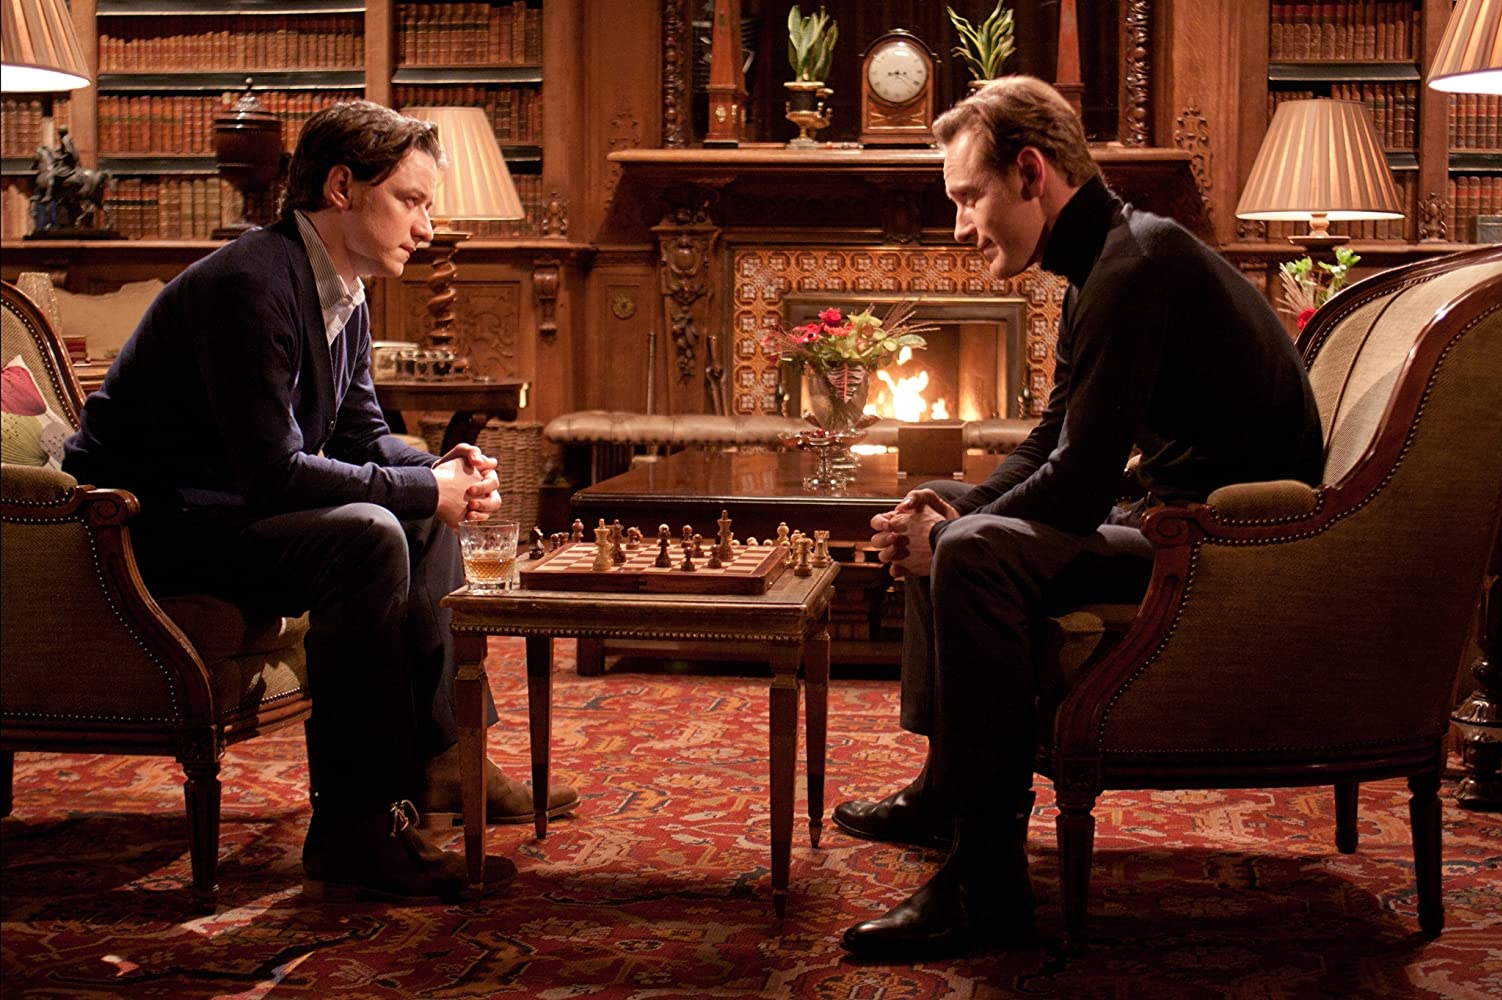 James McAvoy and Michael Fassbender in X: First Class (2011)